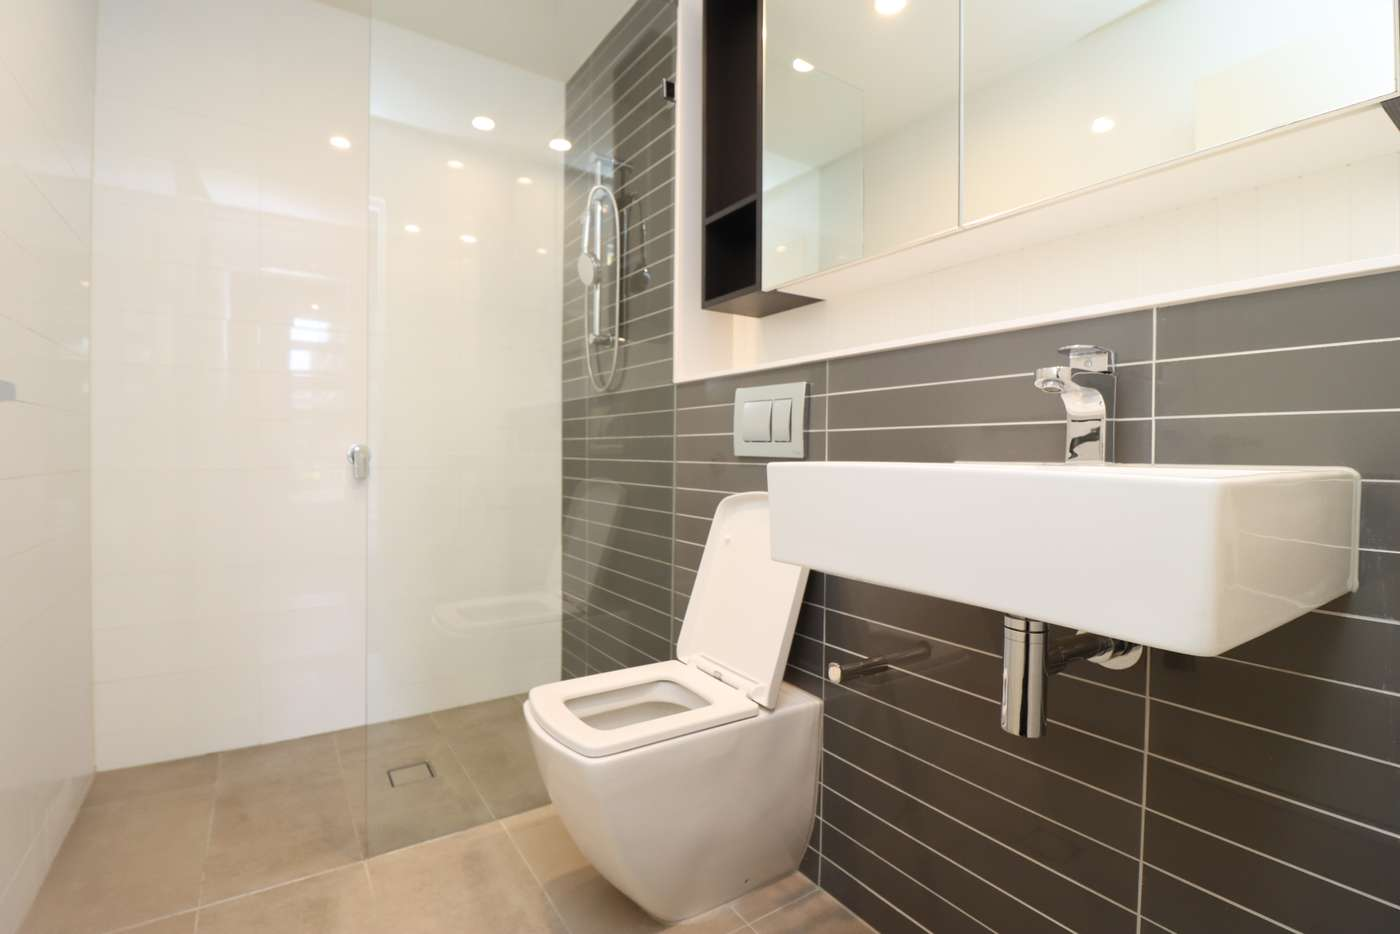 Seventh view of Homely apartment listing, 410/13 Verona Dr, Wentworth Point NSW 2127